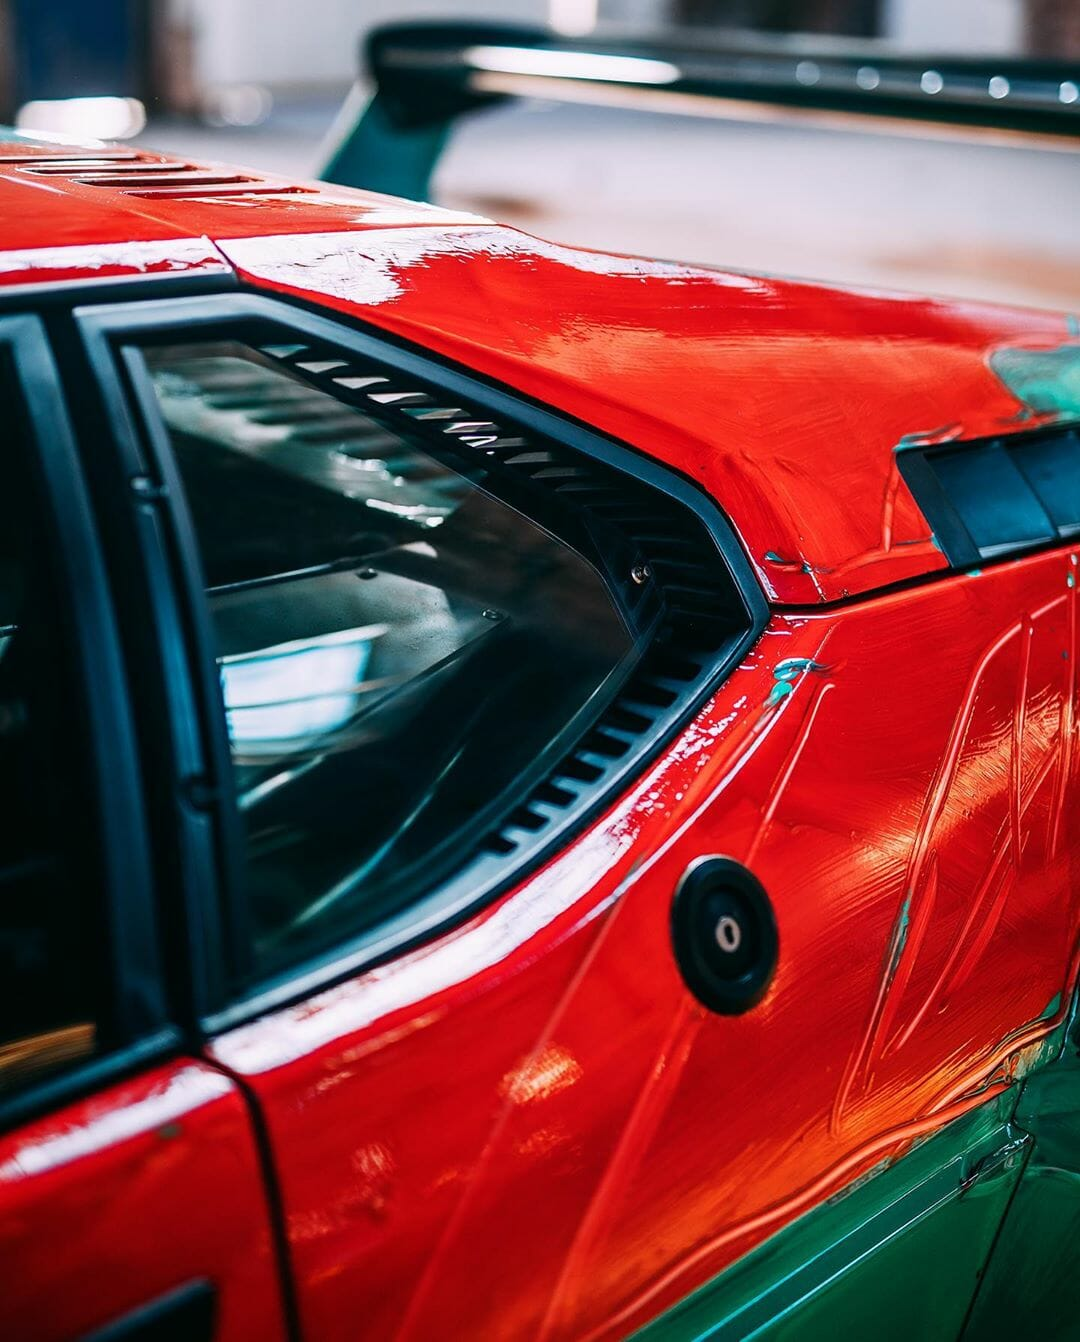 BMW M1 by Andy Warhol - BMW Art Cars - Picture 8 by Stephan Bauer